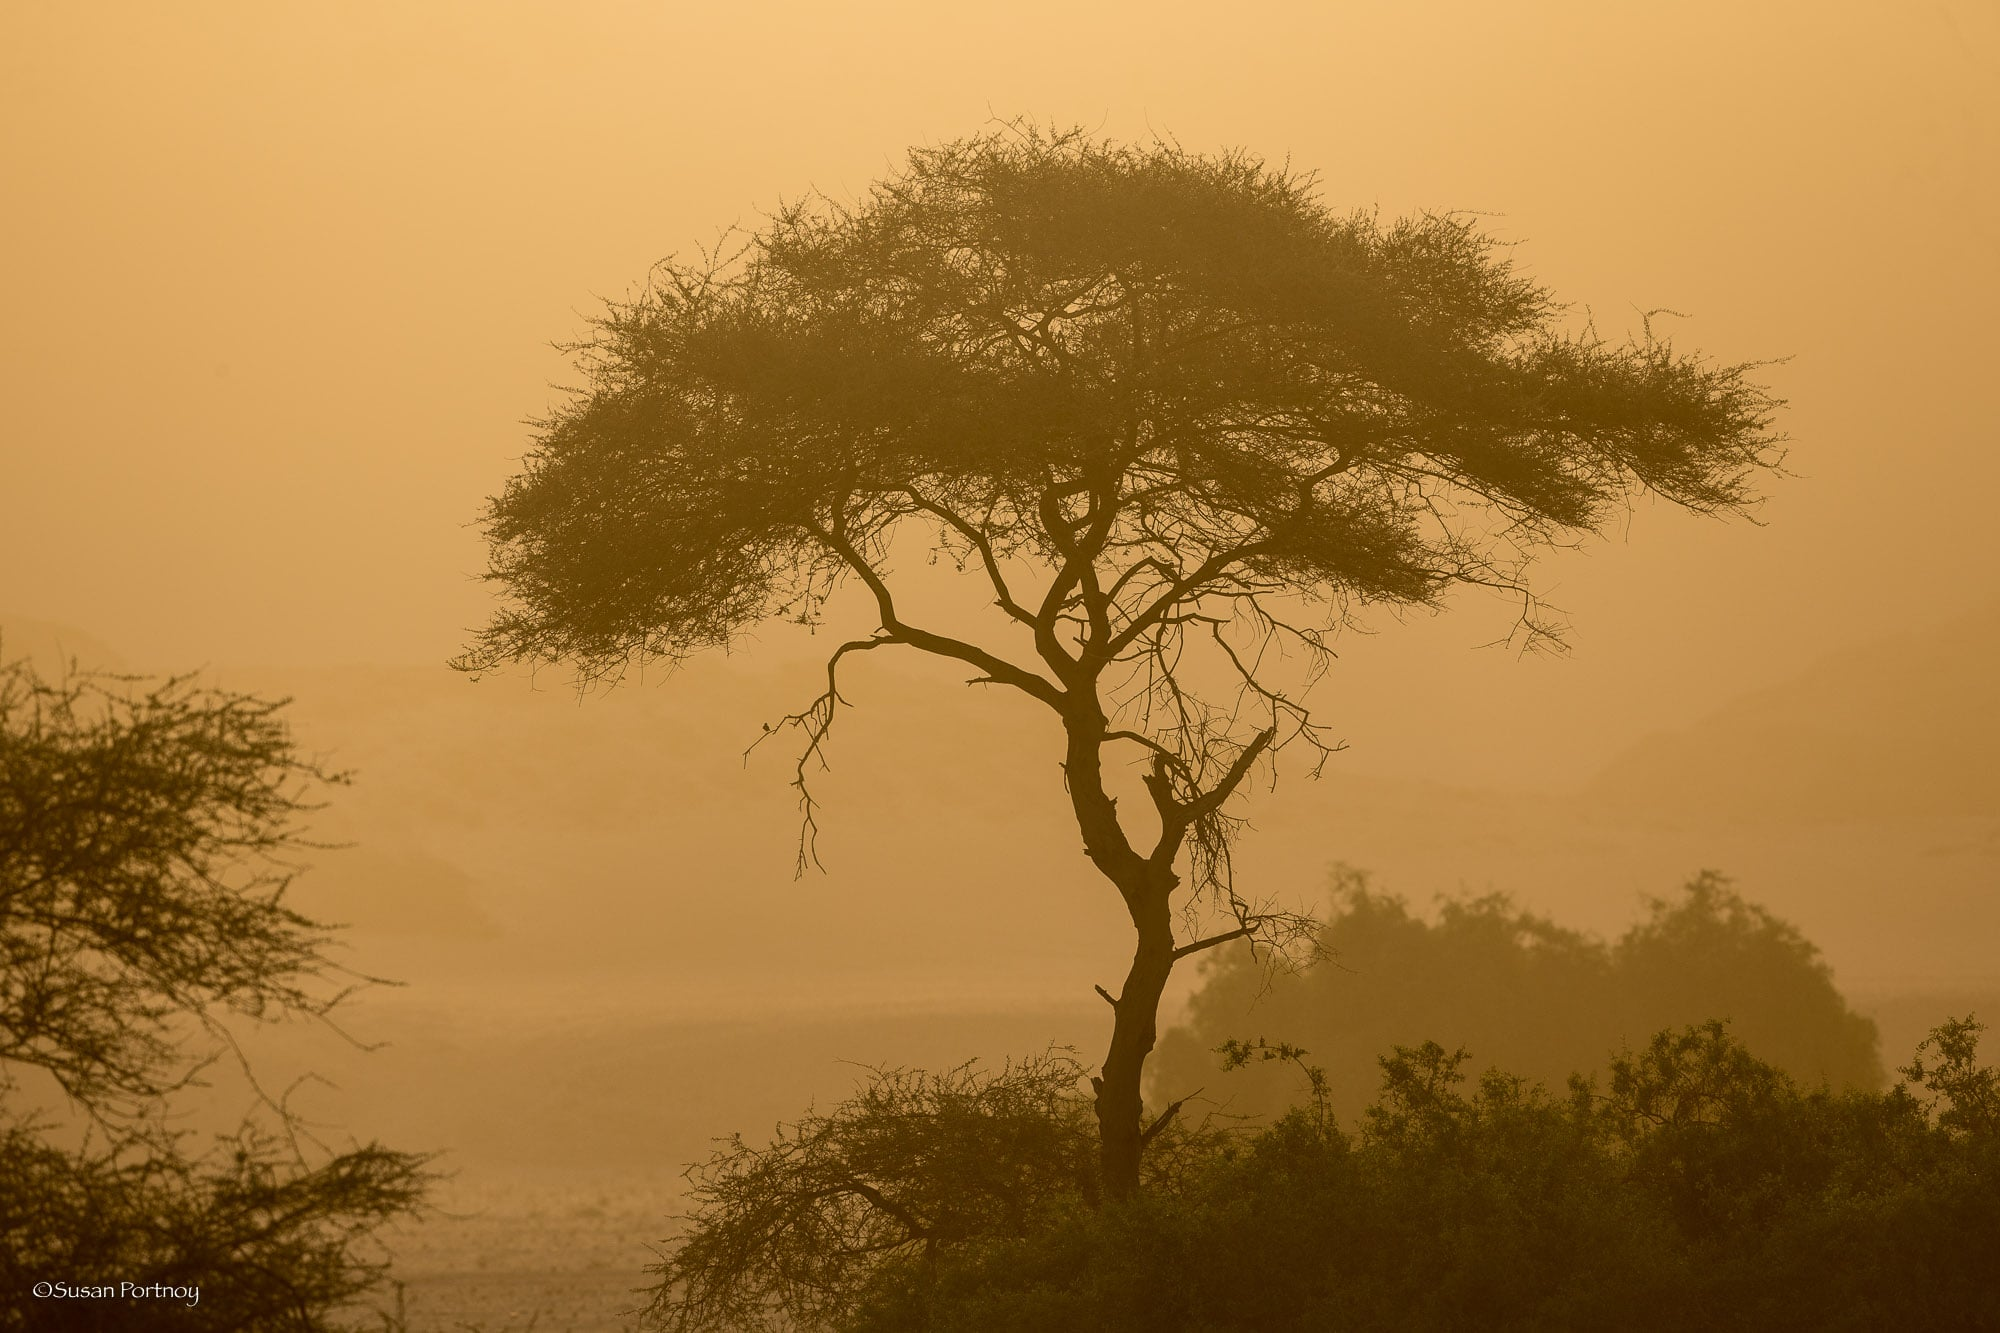 A tree drenched in a sandy haze after a sandstorm near Hoanib Skeleton Coast camp in Namibia